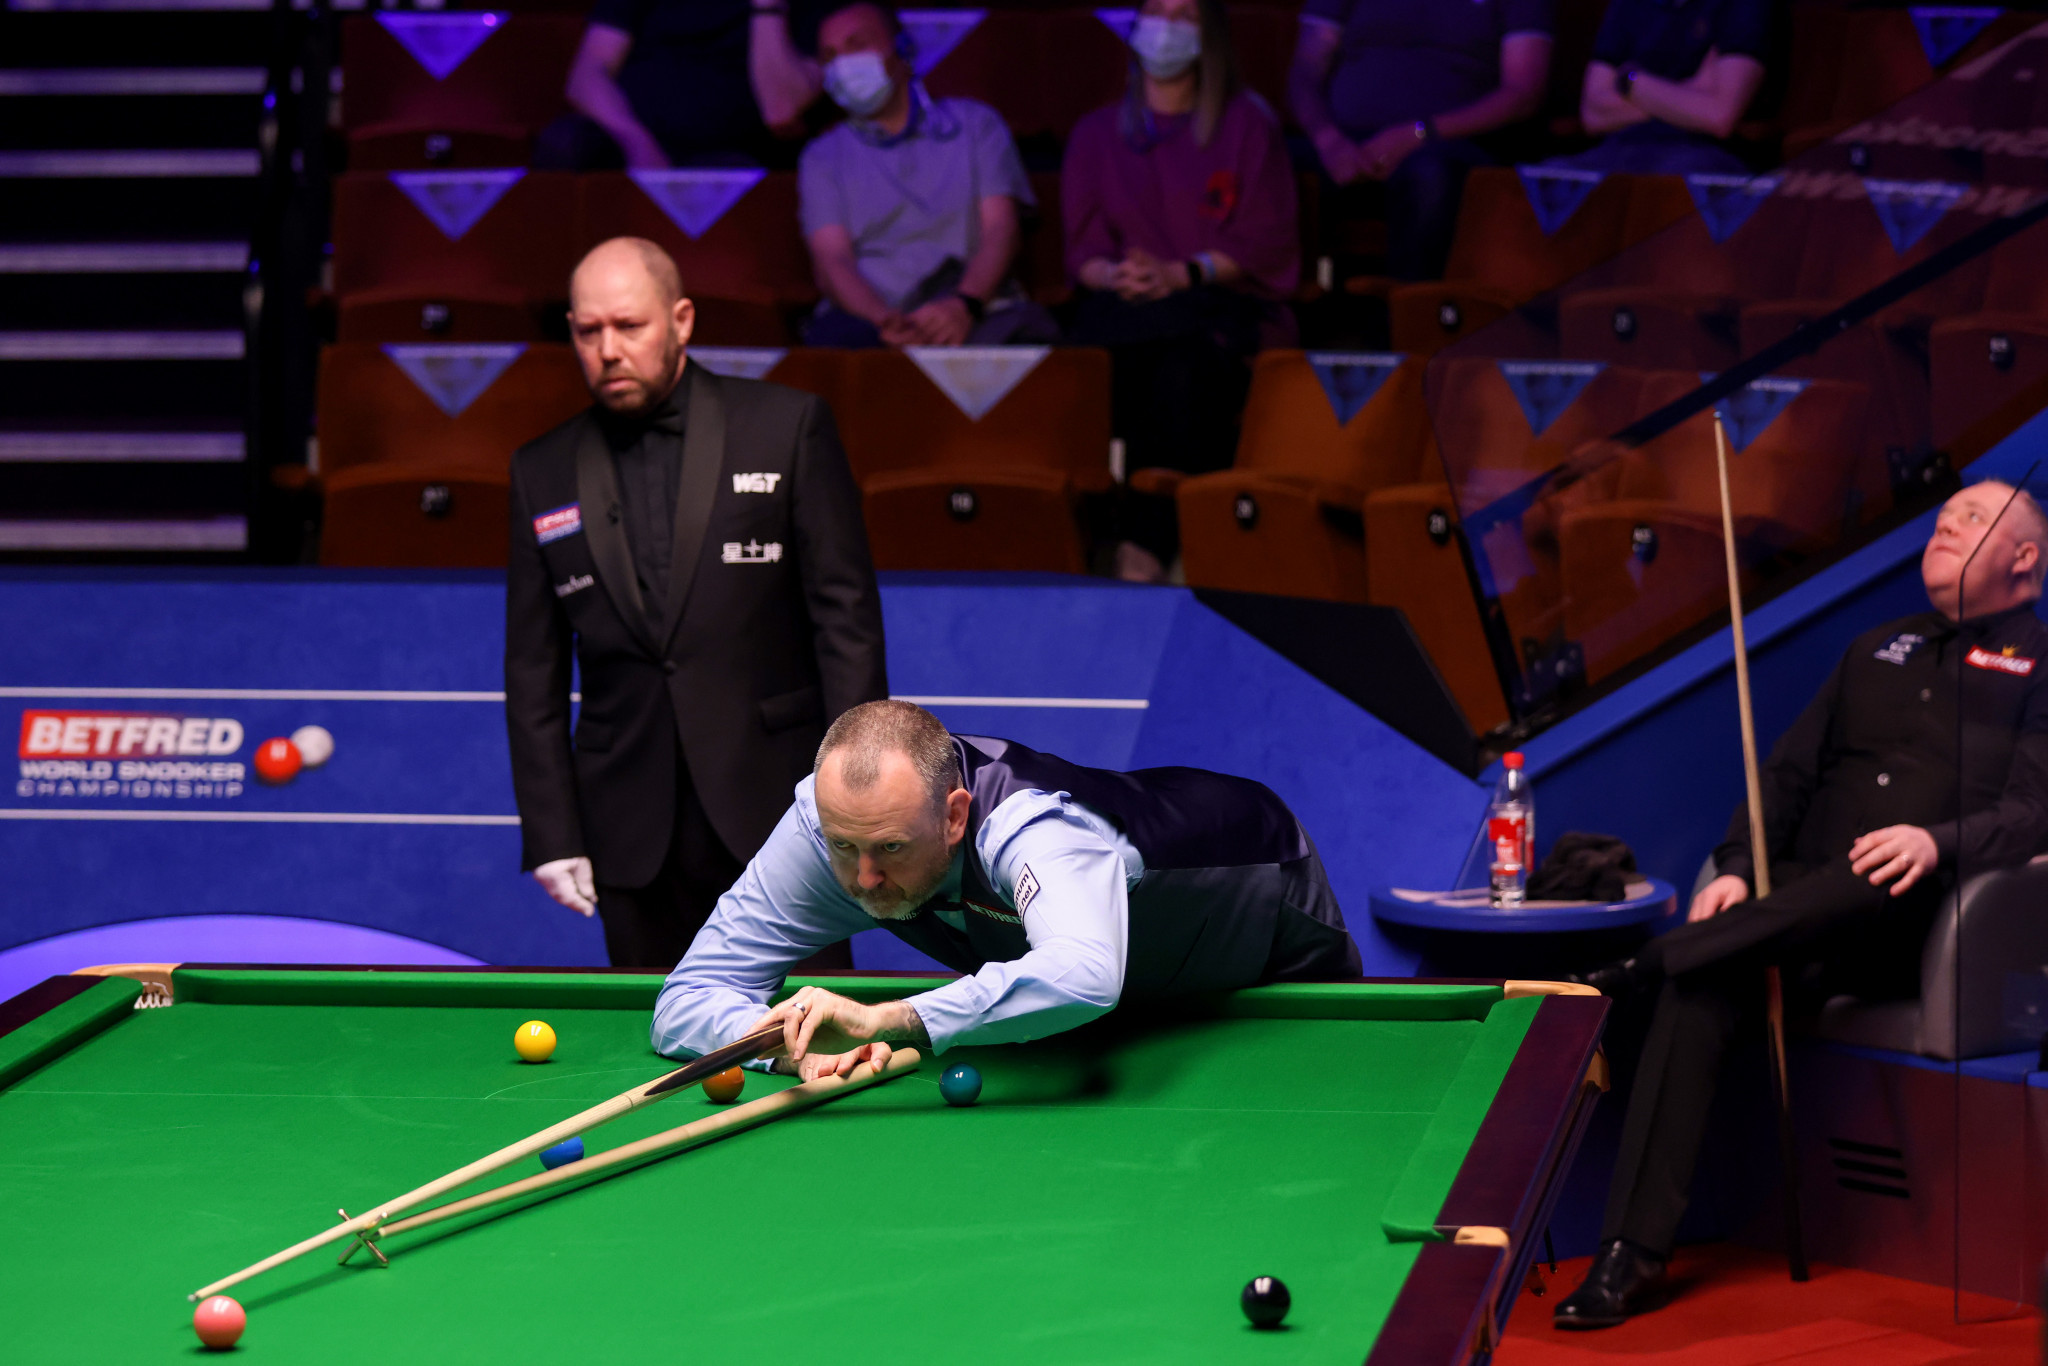 Williams rolls back the years as he defeats Higgins at World Snooker Championship in repeat of 2018 final